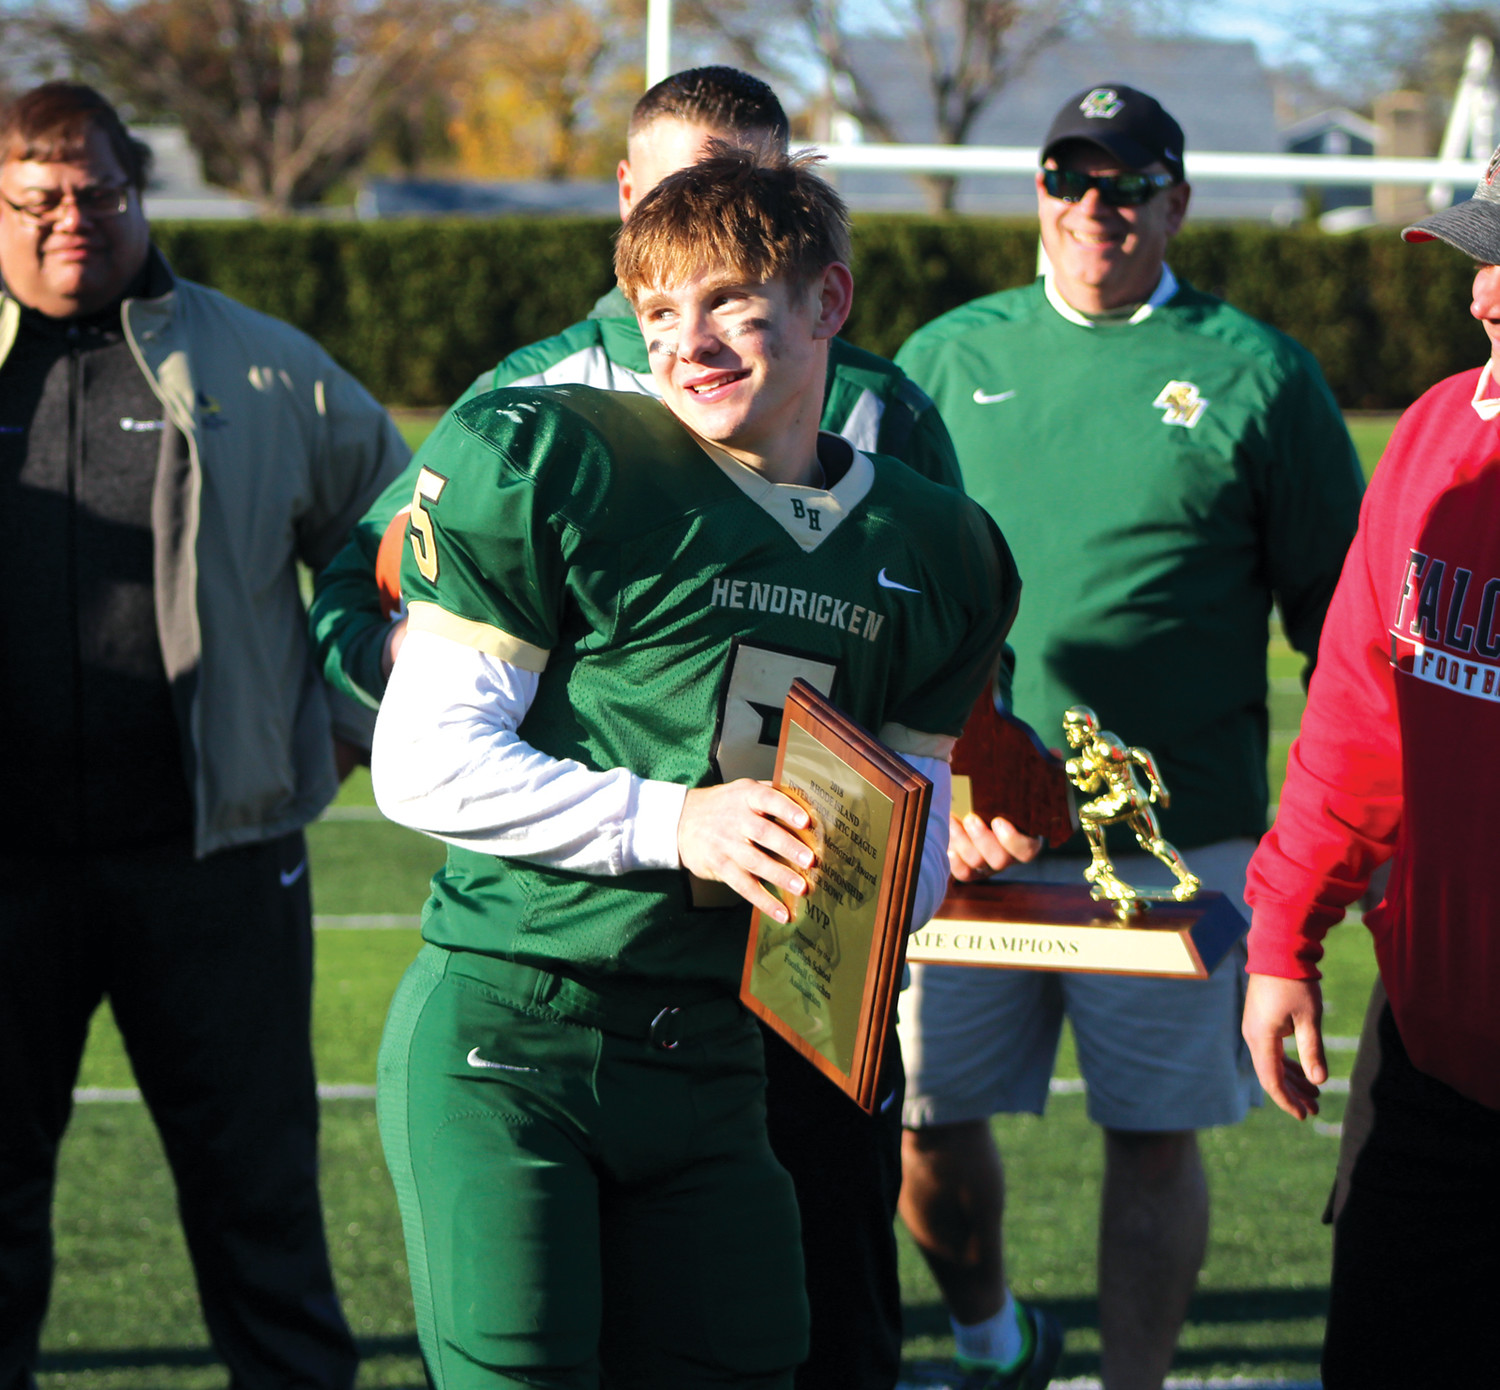 MVP: Bishop Hendricken quarterback Tom Comella receives the MVP award for his performance in the state title game.